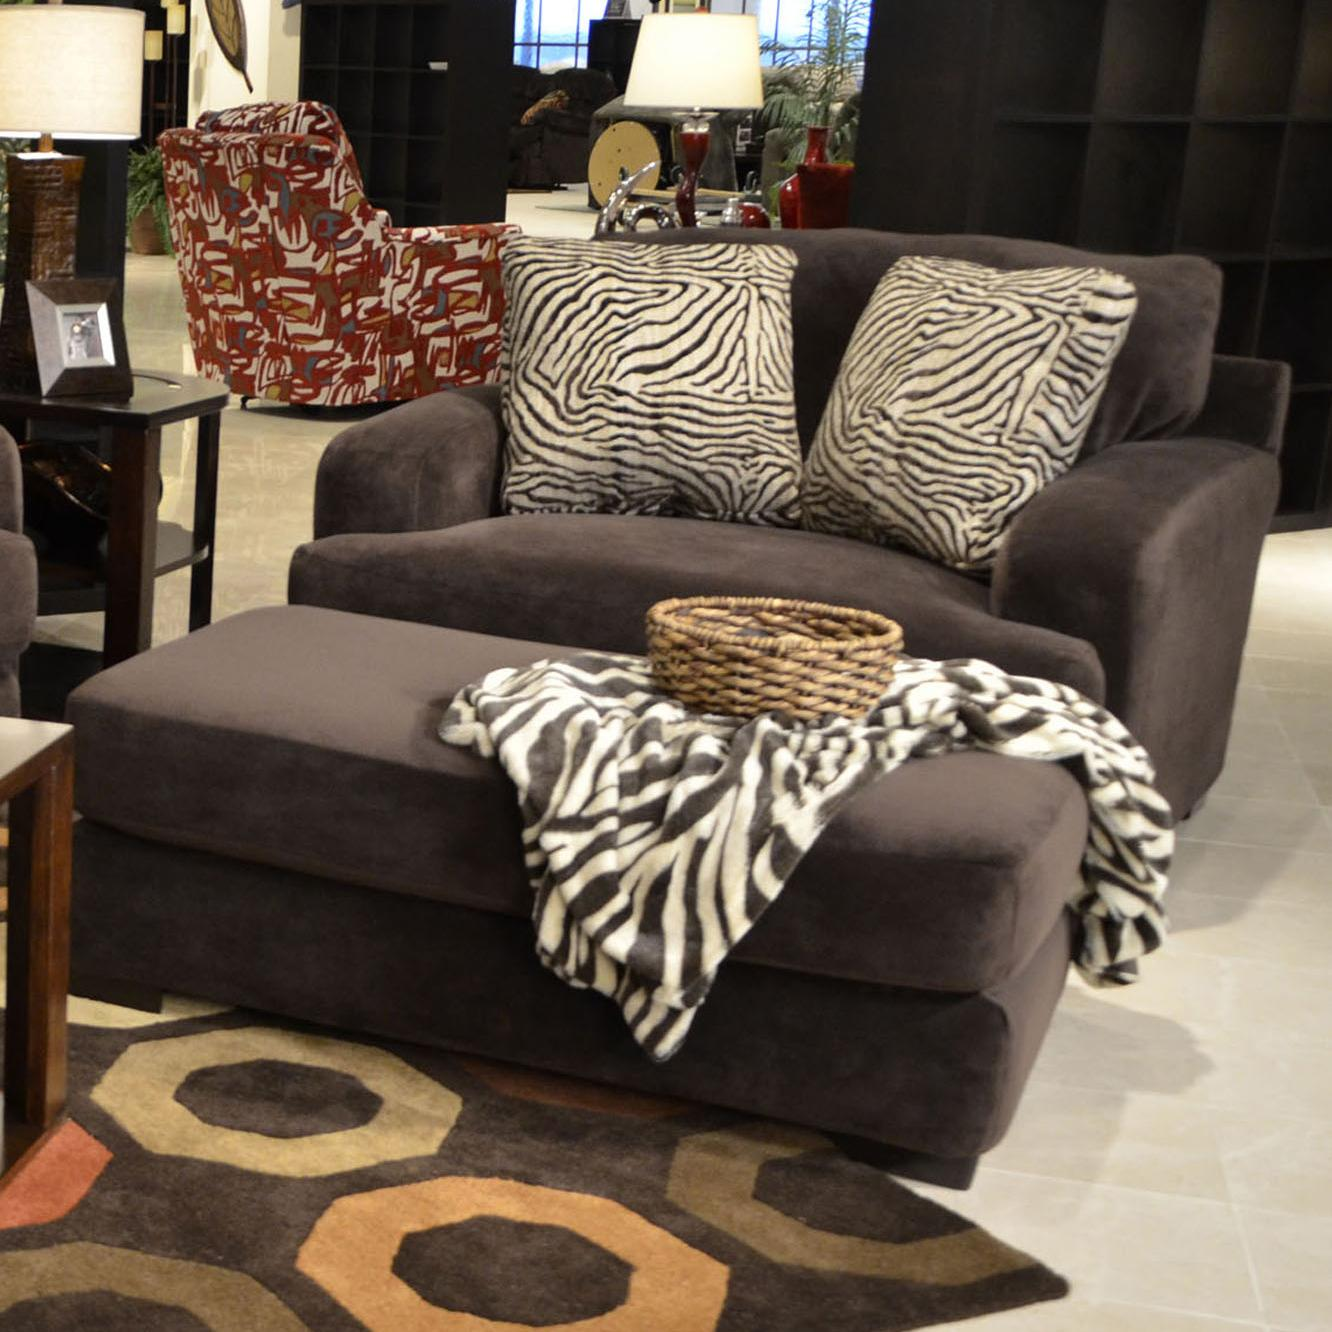 Jackson Furniture Palisades Chair and Ottoman - Item Number: 4186-01+10 Chocolate